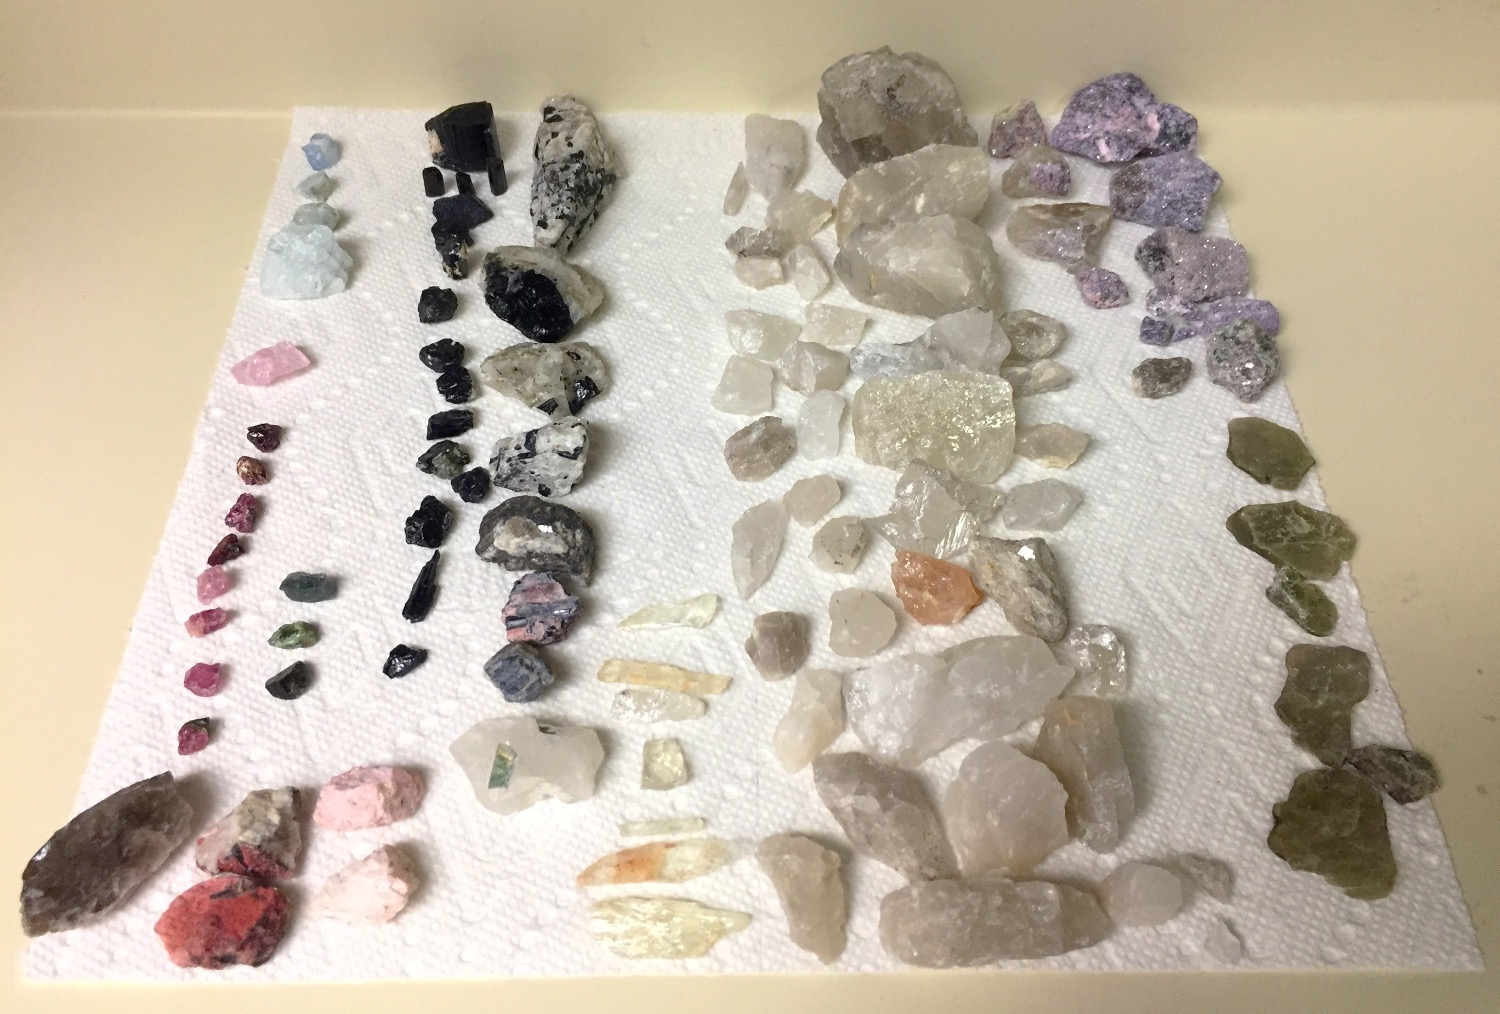 I love all the things I have found!!  I gave them a extra good washing when I got home and they are truly amazing! I feel so lucky to have had this opportunity!! Thanks Gaia for providing so many supporting Crystals in my life!